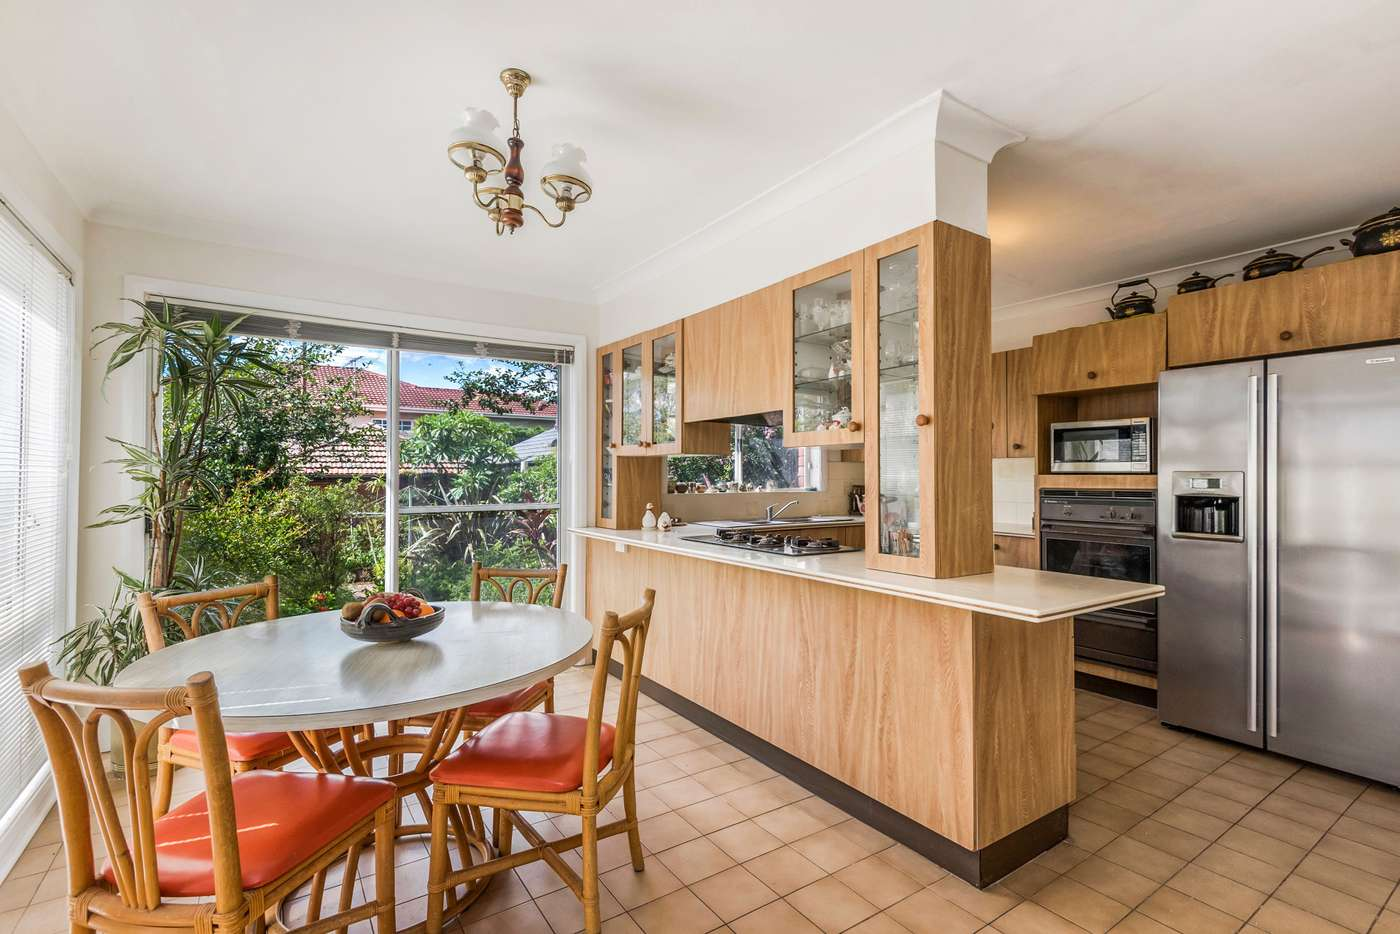 Sixth view of Homely house listing, 3 Pindari Avenue, Mosman NSW 2088